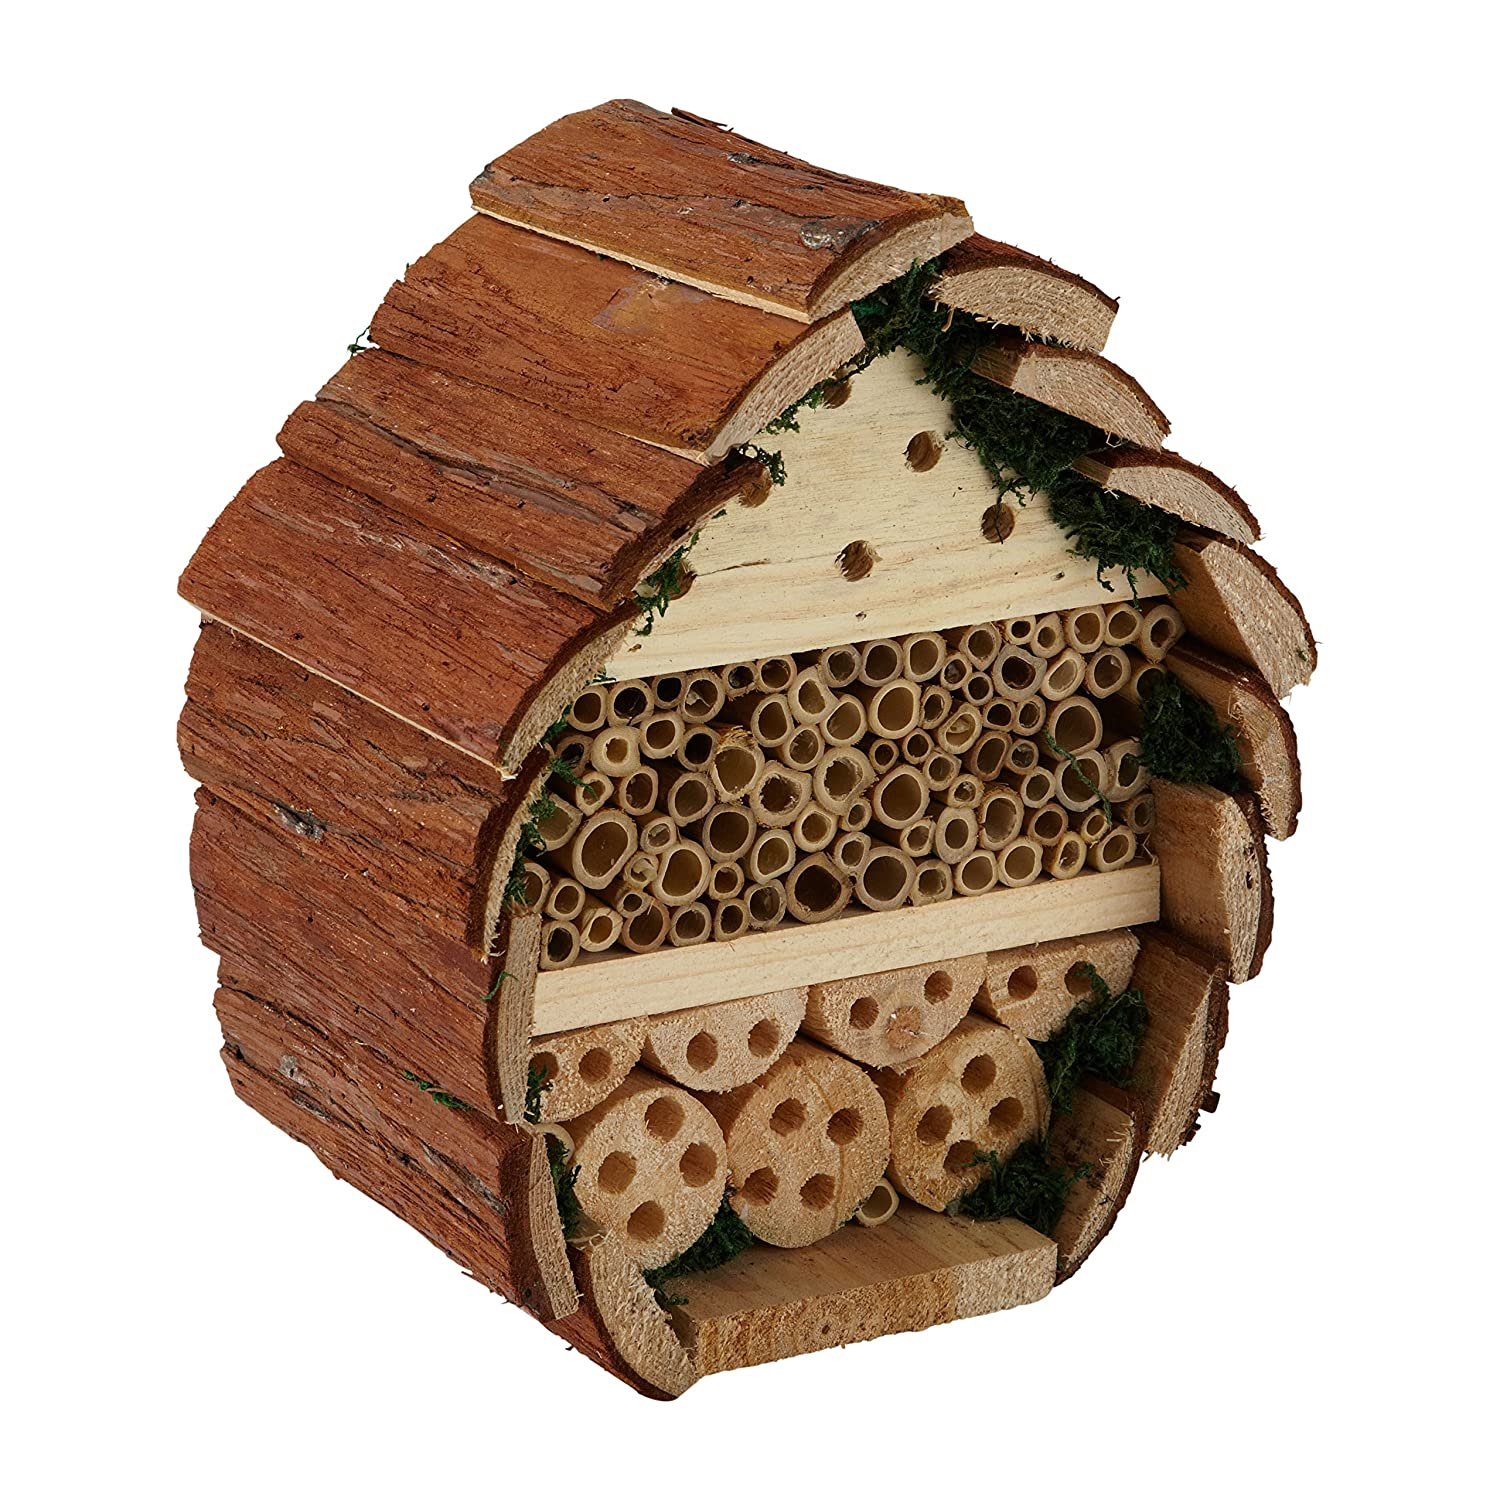 Insect Log Cabin Bee and Bug Home Insect Hotel with Flower Seeds For Bees Bee Proof Suits